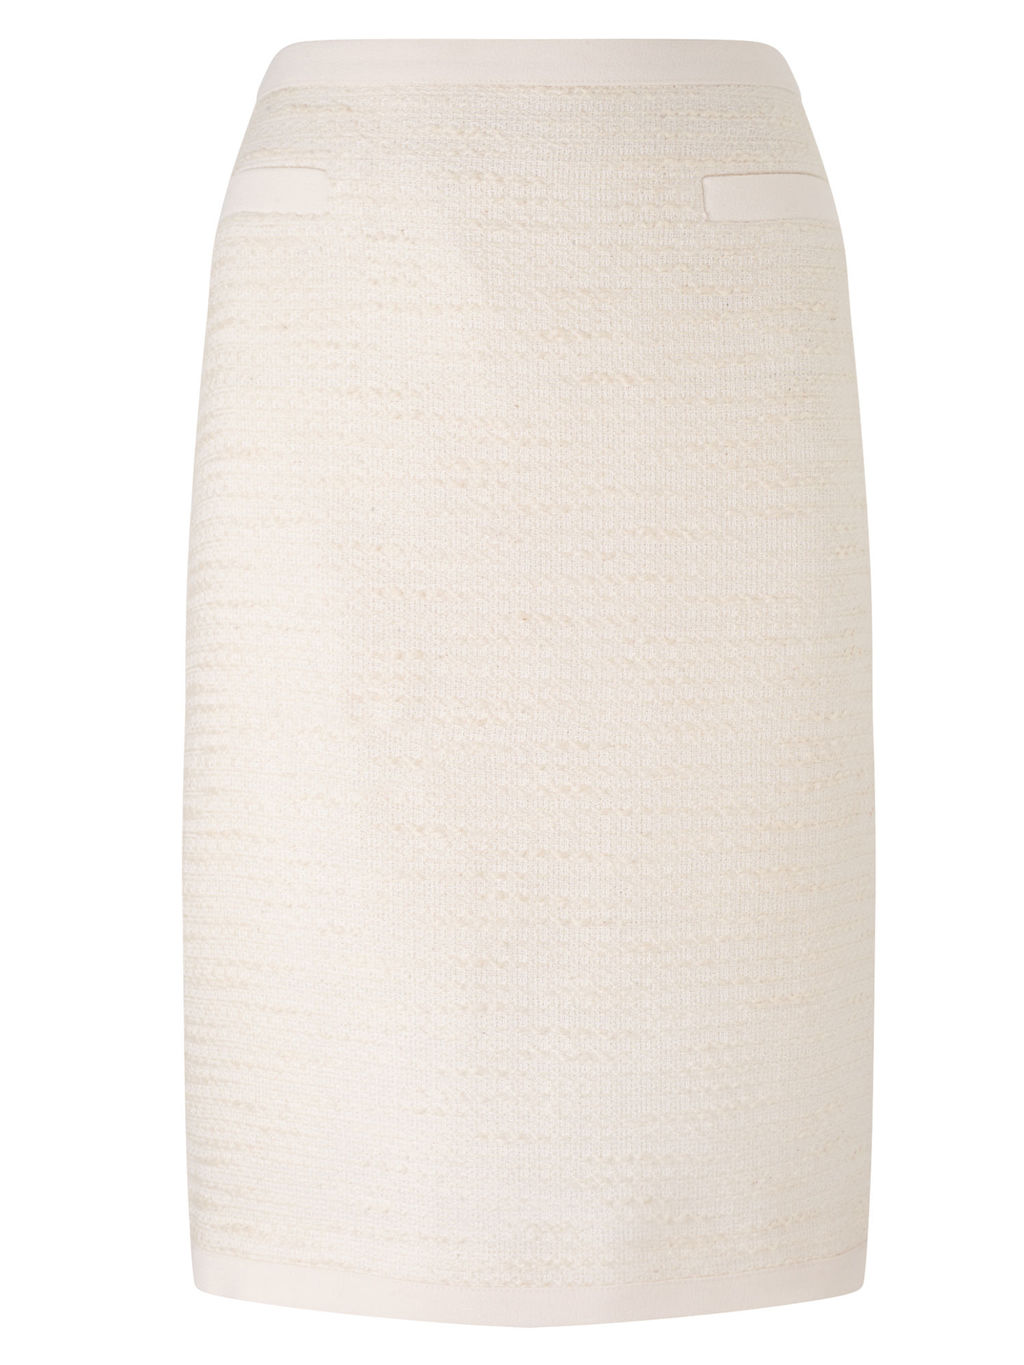 Tweed Skirt, Ivory - pattern: plain; style: pencil; fit: tailored/fitted; waist: high rise; predominant colour: ivory/cream; length: just above the knee; occasions: occasion, creative work; pattern type: fabric; texture group: woven light midweight; fibres: viscose/rayon - mix; season: s/s 2016; wardrobe: basic